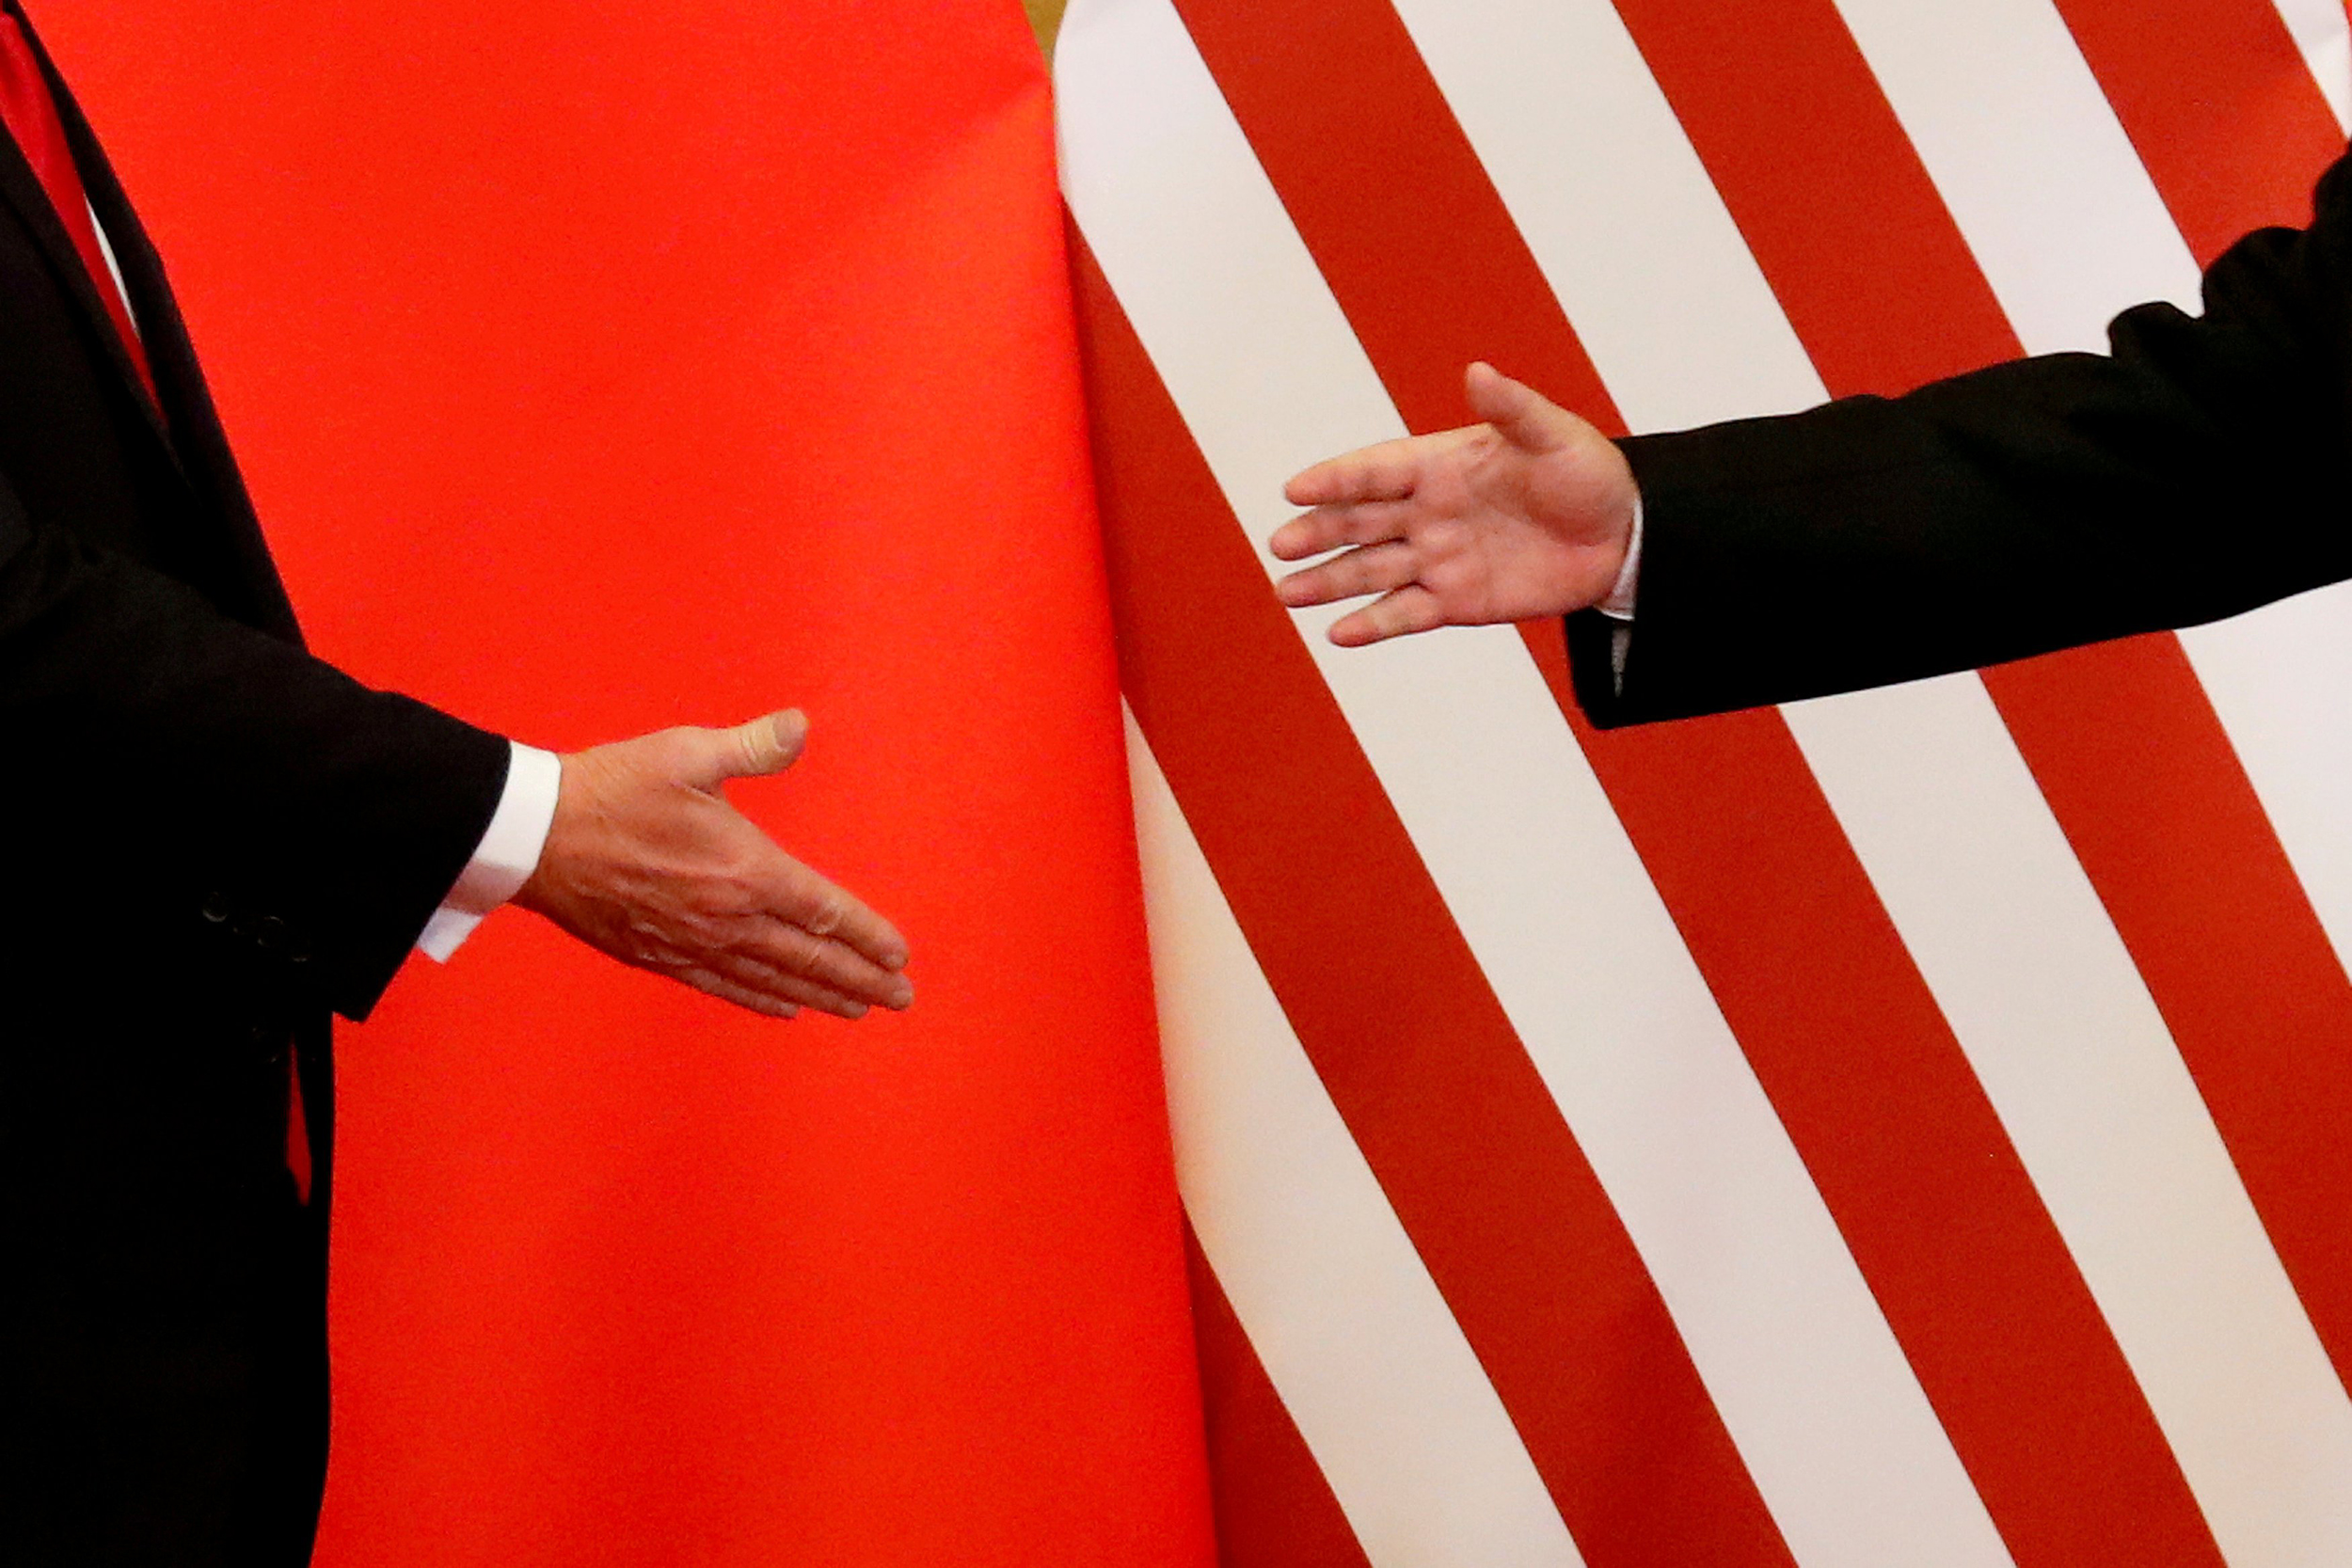 No longer a simple tit-for-tat: China is ready to endure — and inflict — real pain on the U.S.